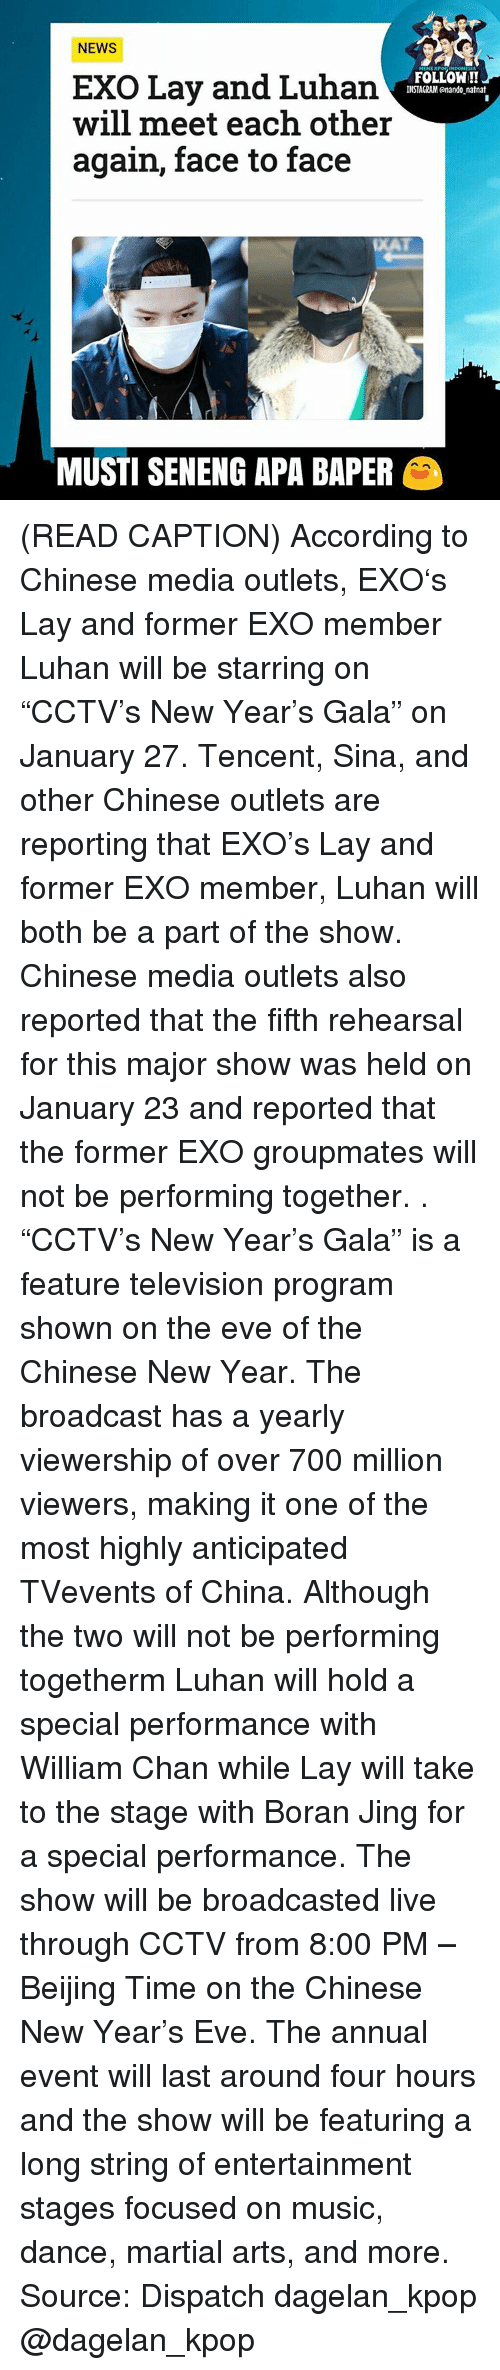 "Beijing, Musty, and Sina: NEWS  FOLLOW!!  EXO Lay and Luhan  INSTAGRAM onando natnat  will meet each other  again, face to face  MUSTI SENENG APA BAPER (READ CAPTION) According to Chinese media outlets, EXO's Lay and former EXO member Luhan will be starring on ""CCTV's New Year's Gala"" on January 27. Tencent, Sina, and other Chinese outlets are reporting that EXO's Lay and former EXO member, Luhan will both be a part of the show. Chinese media outlets also reported that the fifth rehearsal for this major show was held on January 23 and reported that the former EXO groupmates will not be performing together. . ""CCTV's New Year's Gala"" is a feature television program shown on the eve of the Chinese New Year. The broadcast has a yearly viewership of over 700 million viewers, making it one of the most highly anticipated TVevents of China. Although the two will not be performing togetherm Luhan will hold a special performance with William Chan while Lay will take to the stage with Boran Jing for a special performance. The show will be broadcasted live through CCTV from 8:00 PM – Beijing Time on the Chinese New Year's Eve. The annual event will last around four hours and the show will be featuring a long string of entertainment stages focused on music, dance, martial arts, and more. Source: Dispatch dagelan_kpop @dagelan_kpop"